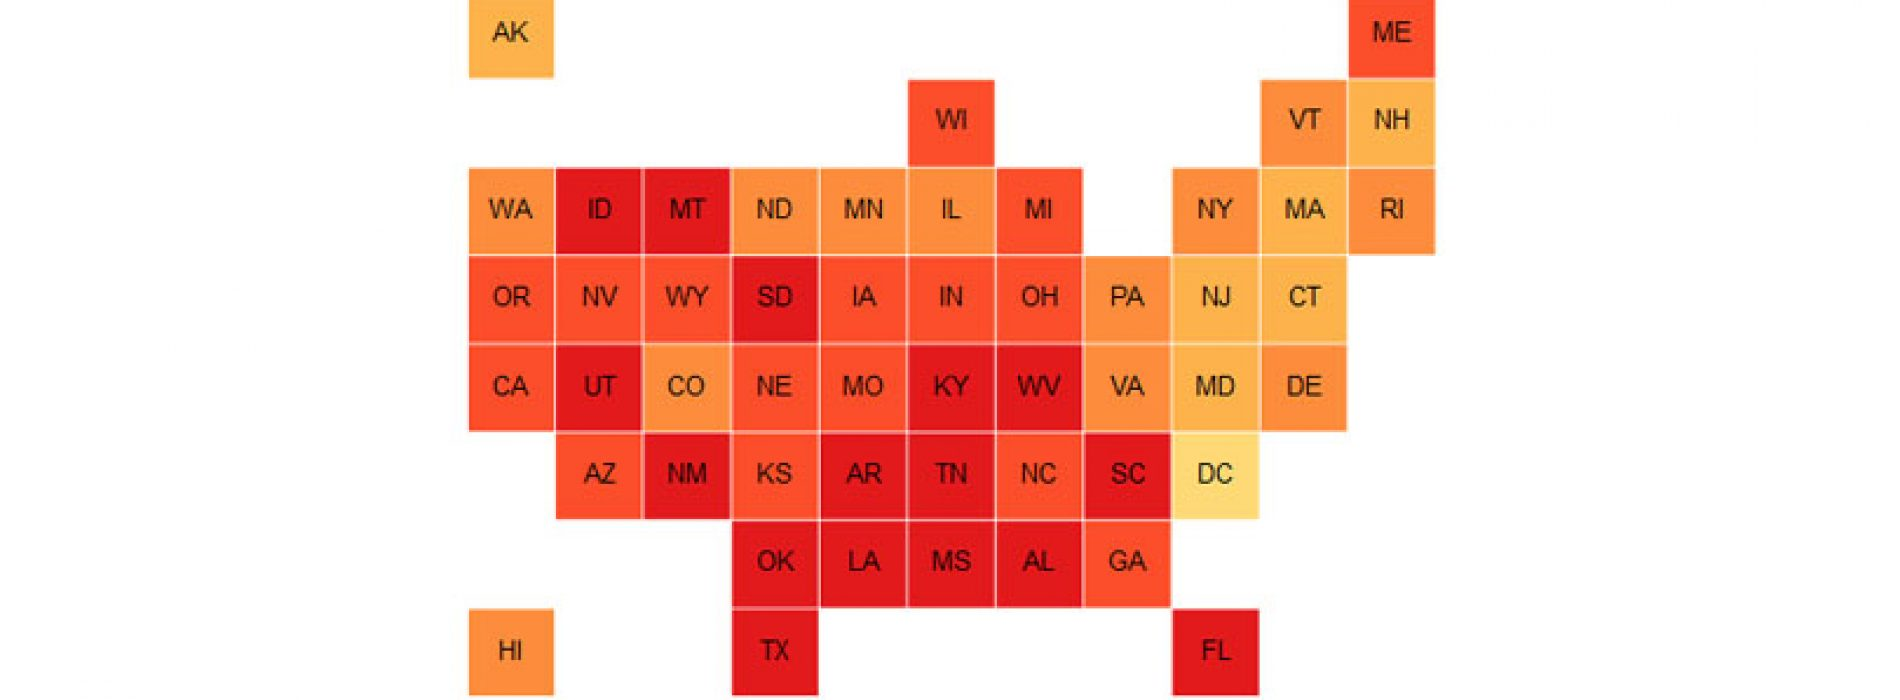 oxfam maine is worst in northeast for low wages beacon oxfam maine is worst in northeast for low wages